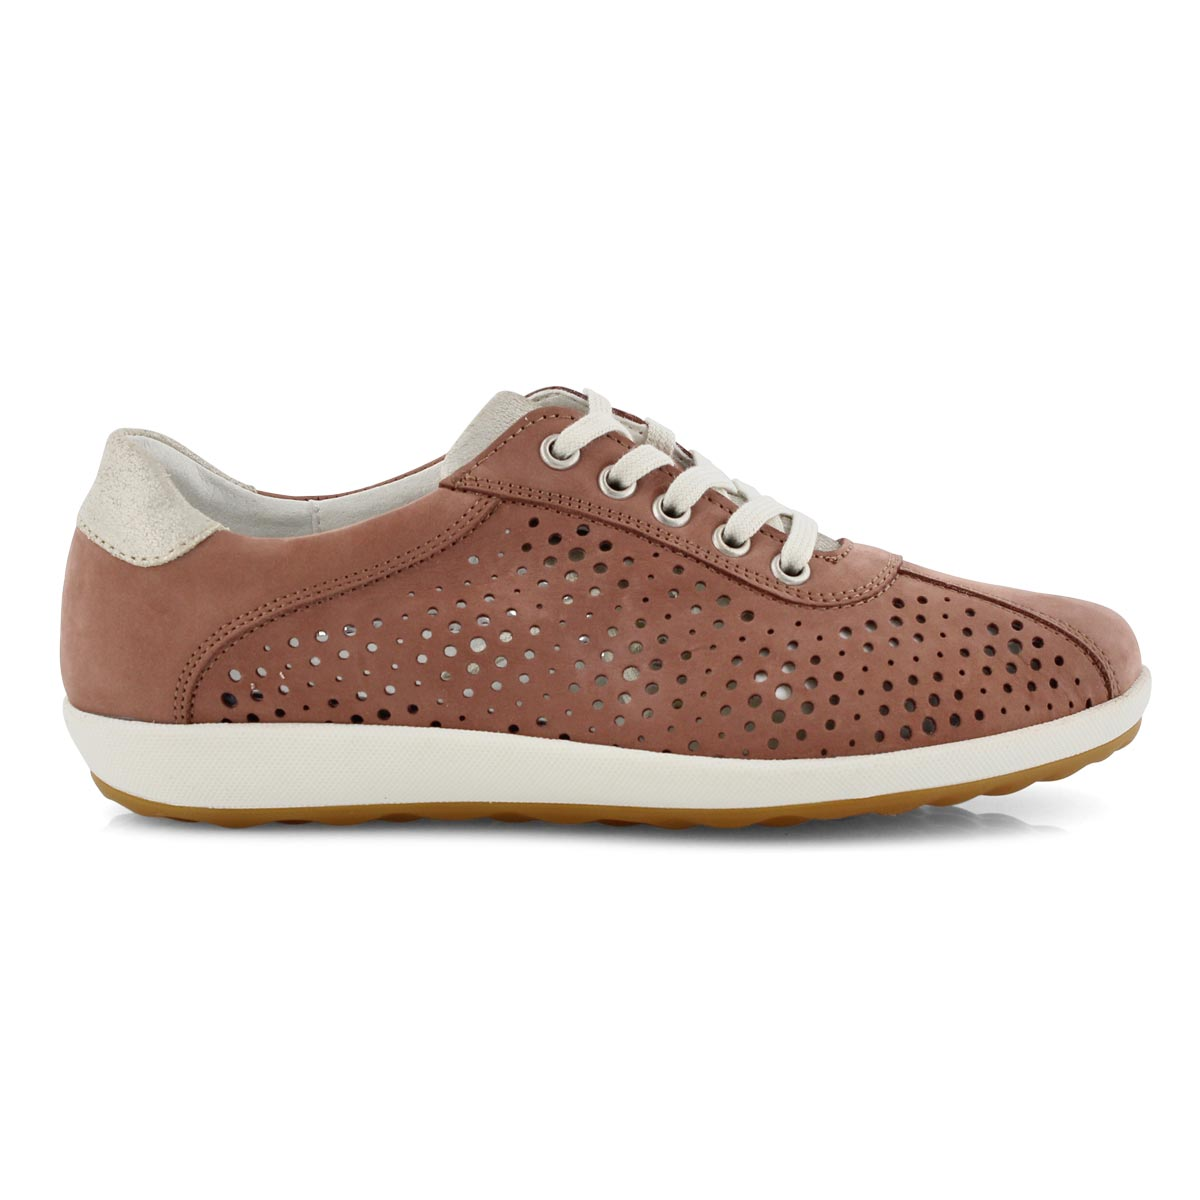 Lds Viola 09 rose lace up sneaker